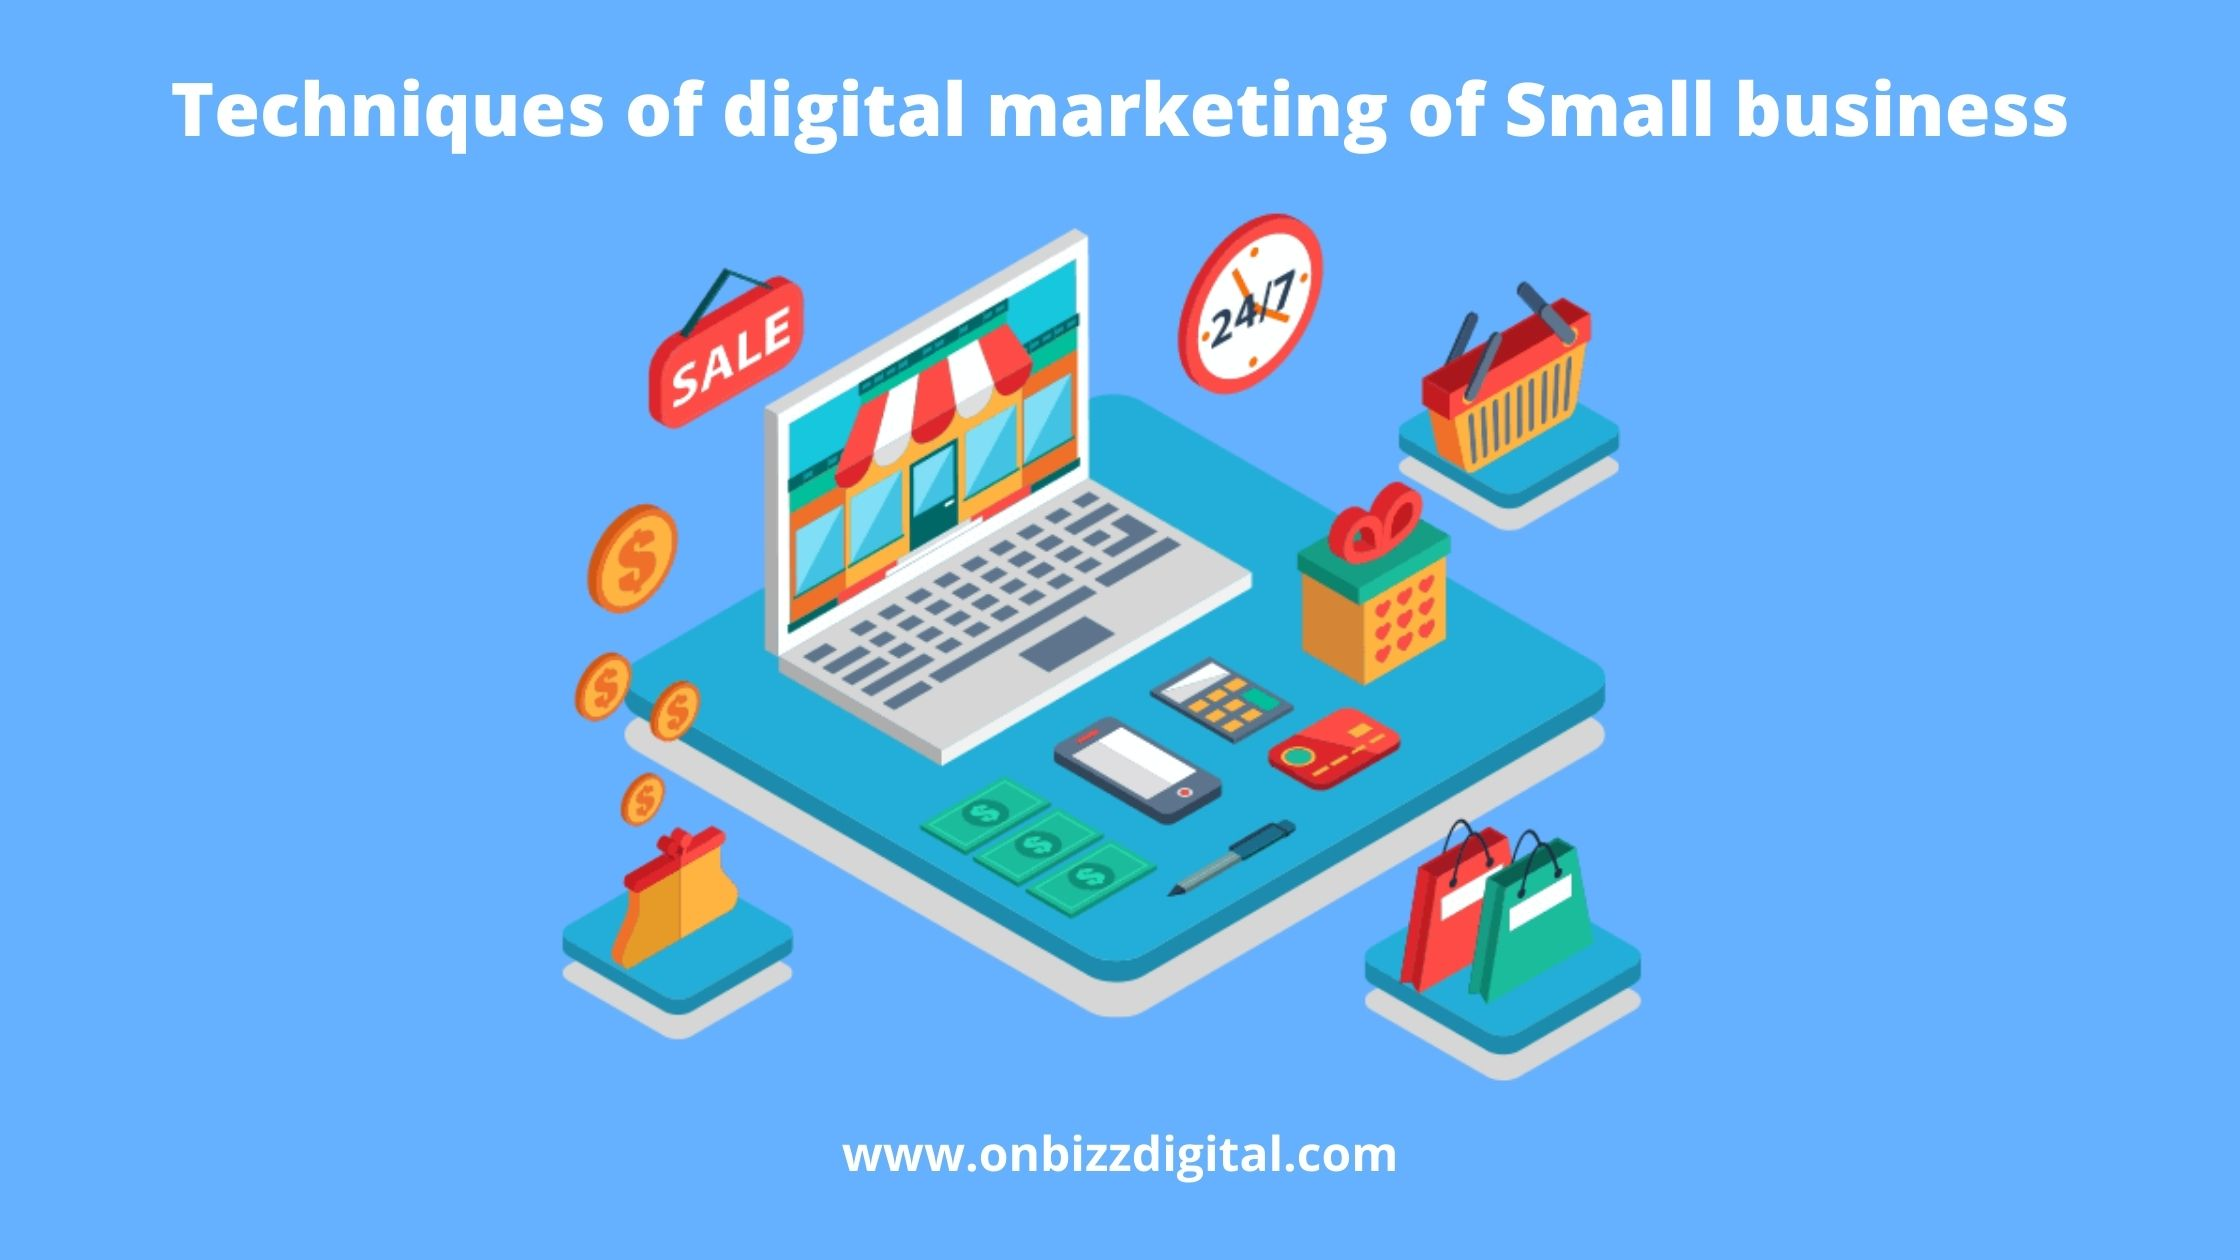 7 proven and cost-saving techniques of digital marketing for small business